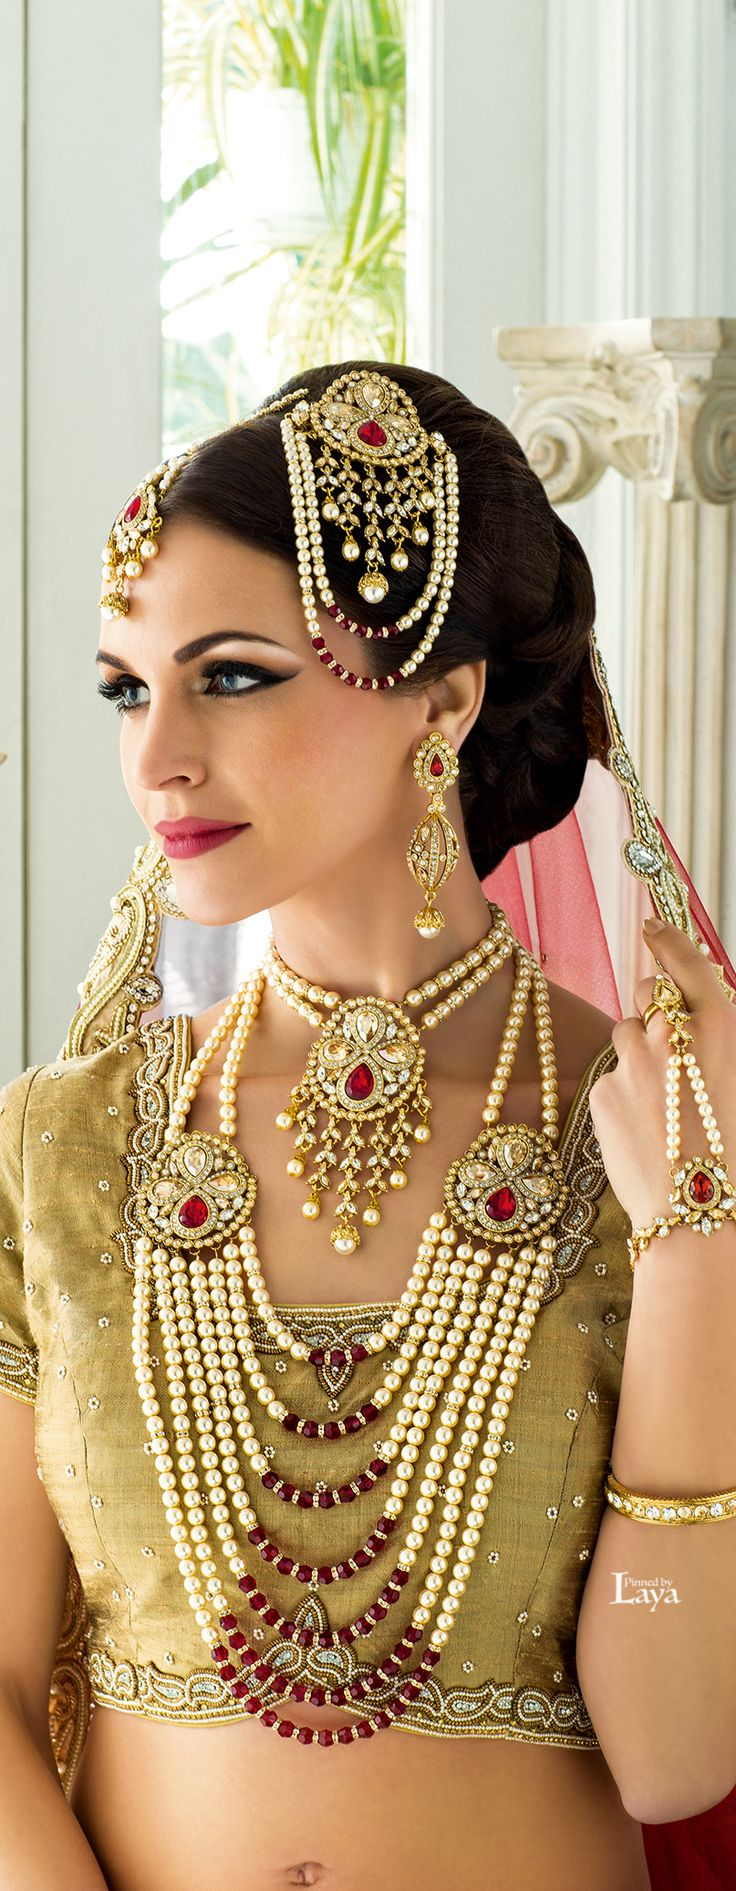 indian wedding bridal jewelry wedding jewelry Indian Wedding Jewelry Indian Jewelry Mughal Jewelry Girl Face Indian Beauty Indian Fashion Knot Bollywood Bridal Necklace